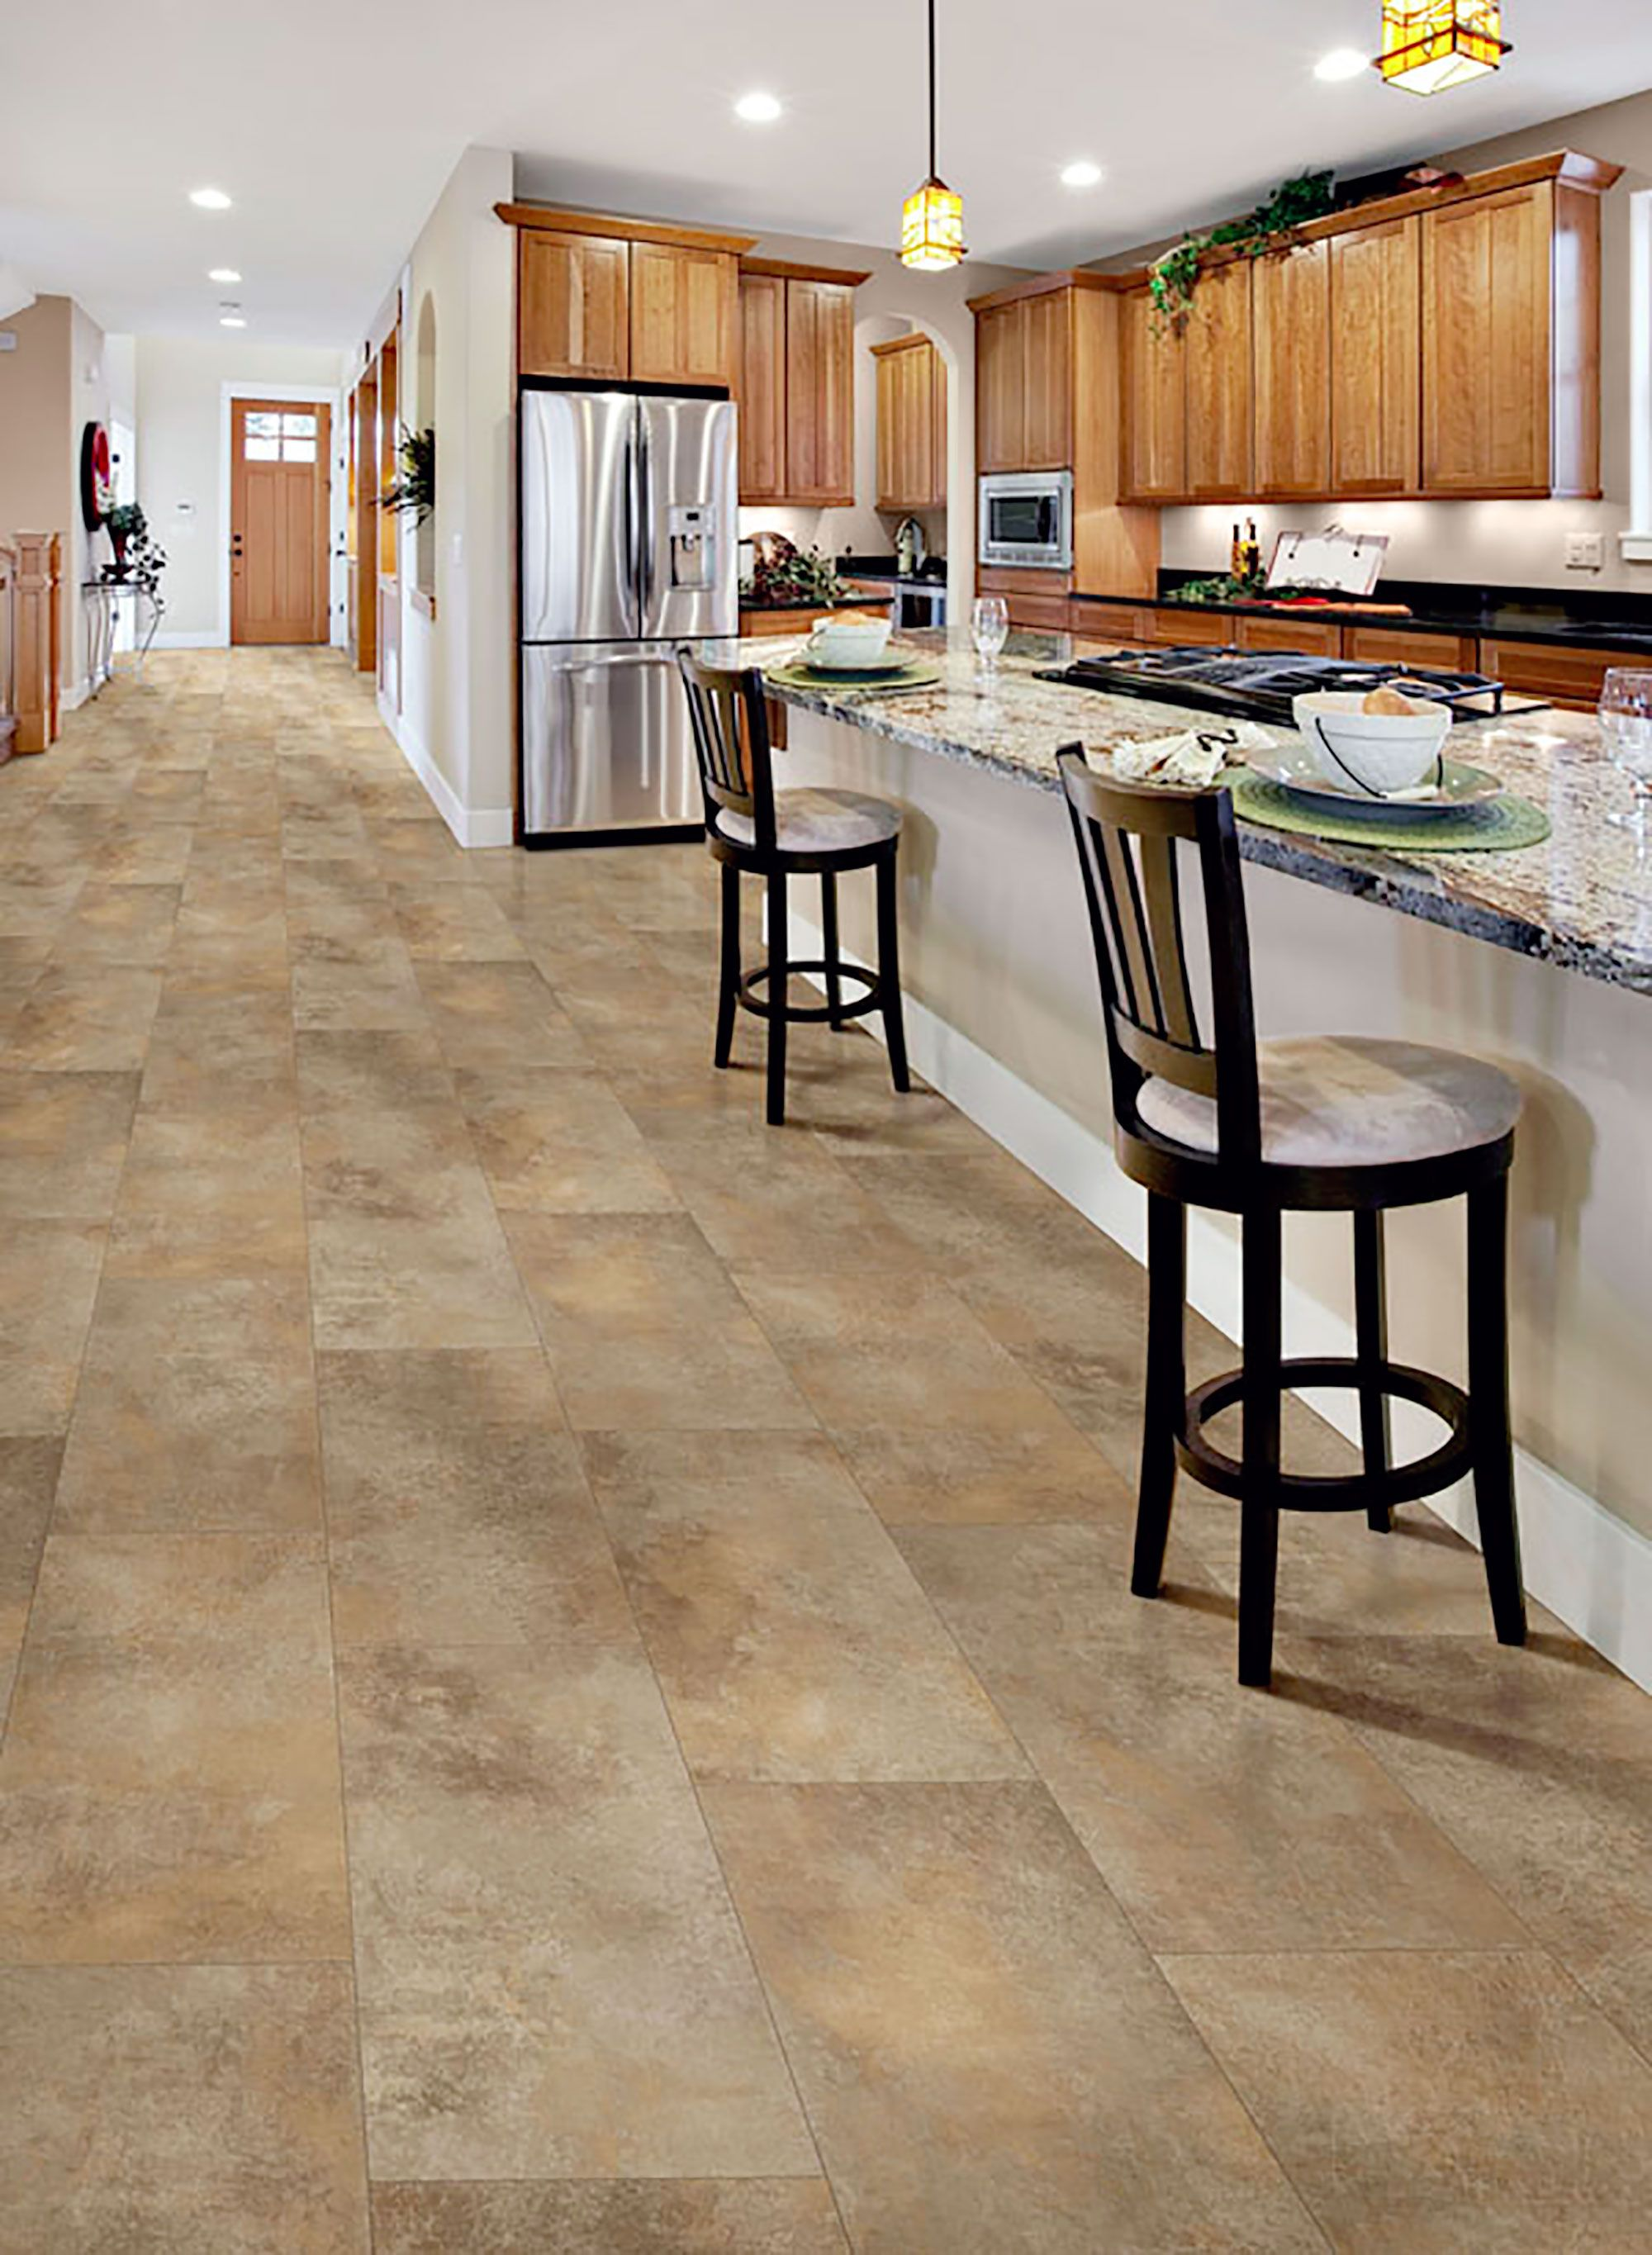 Kitchen Sheet Vinyl Flooring Airstep Evolution Casa Nova Desert View Congoleum Airstep